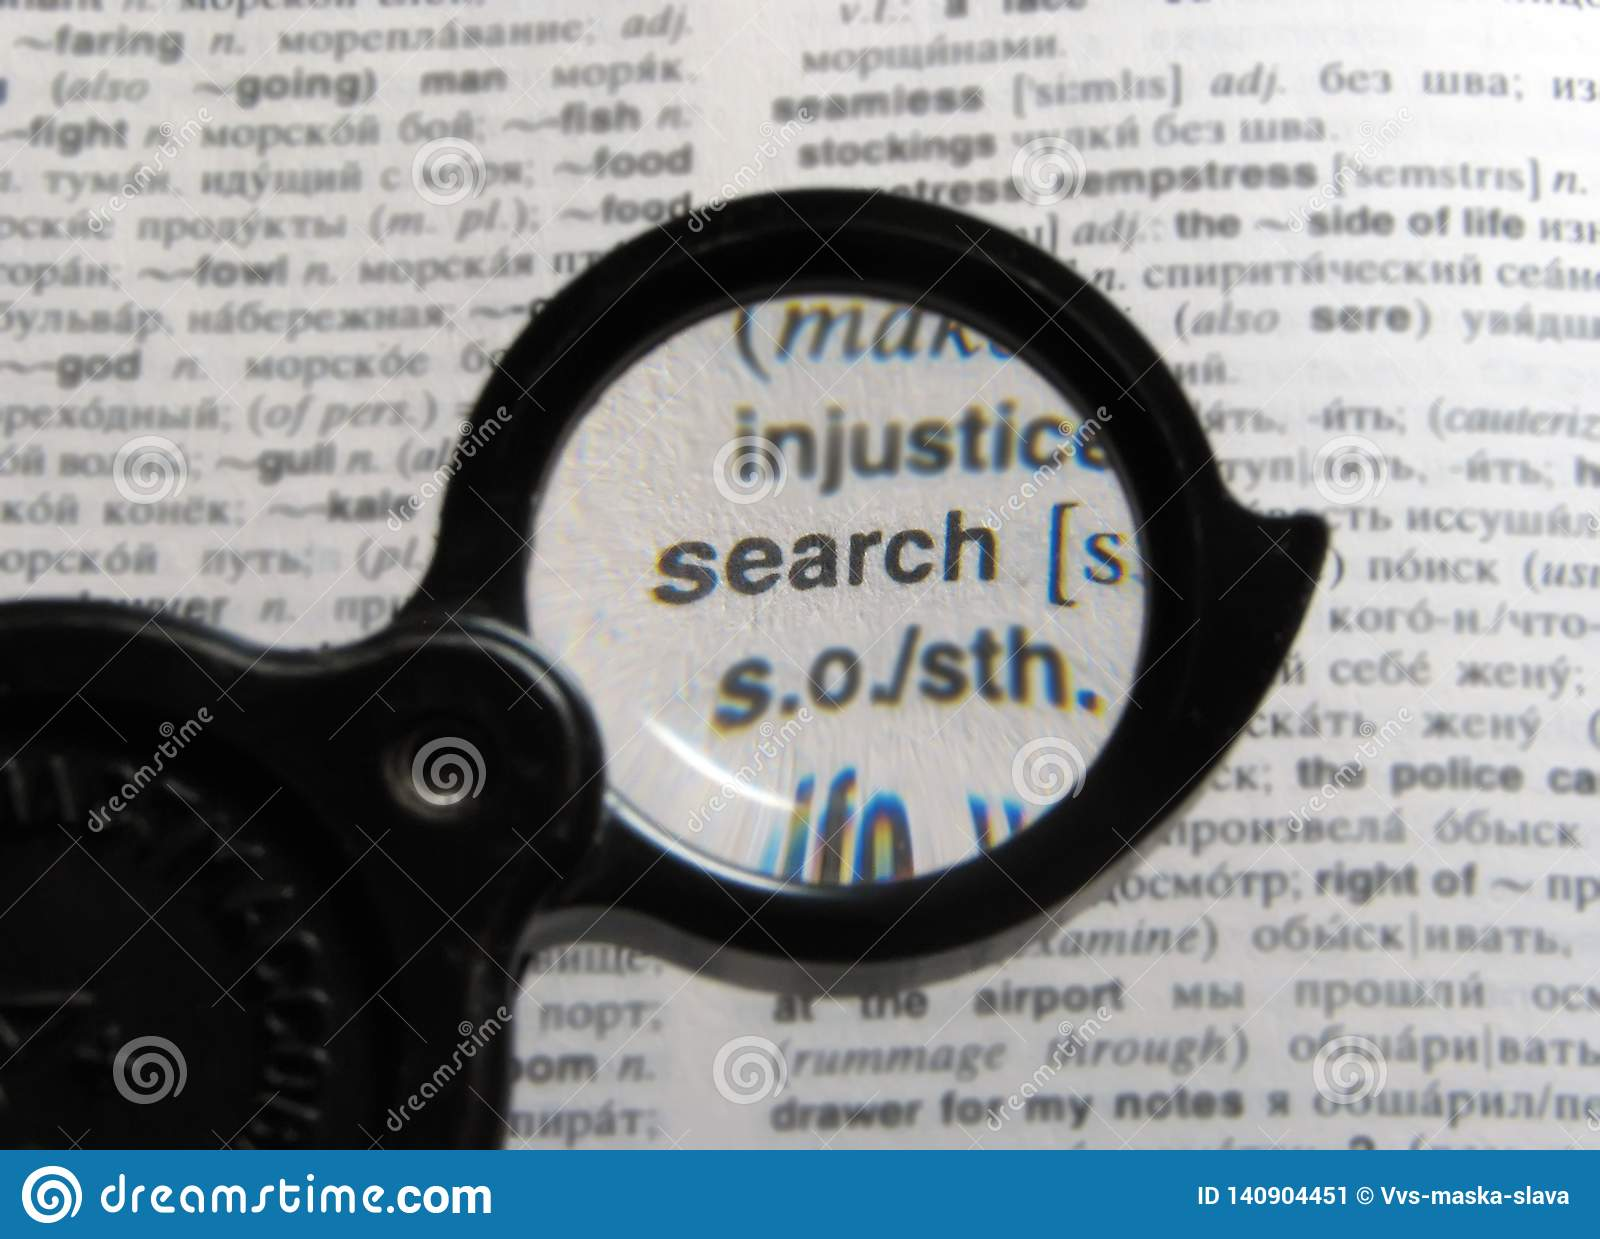 Your effective search engine